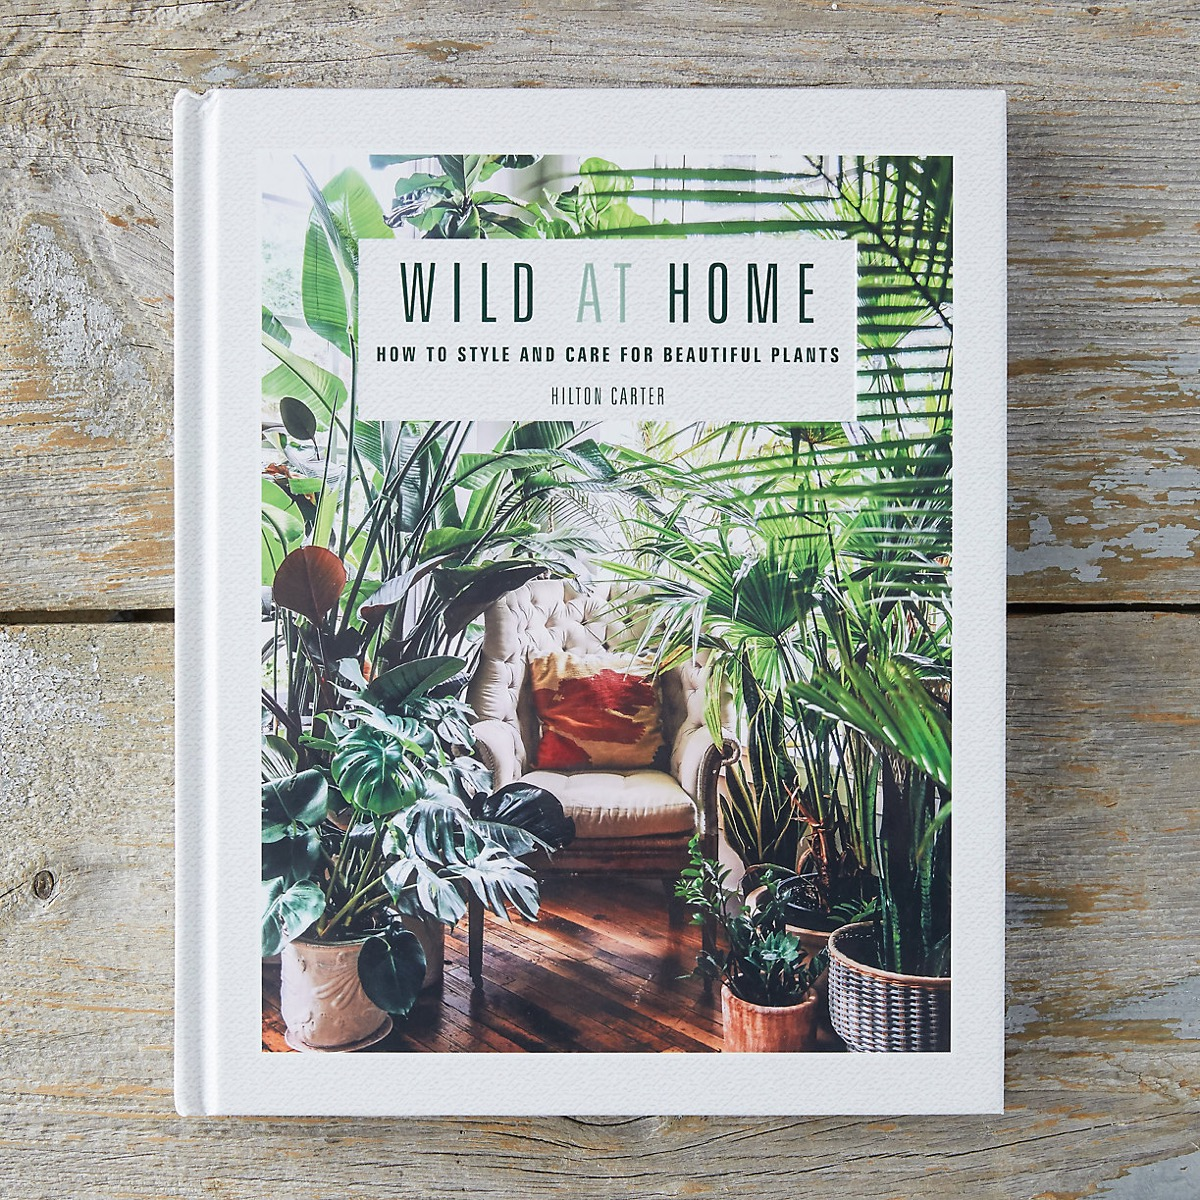 Wild at Home book on wood background